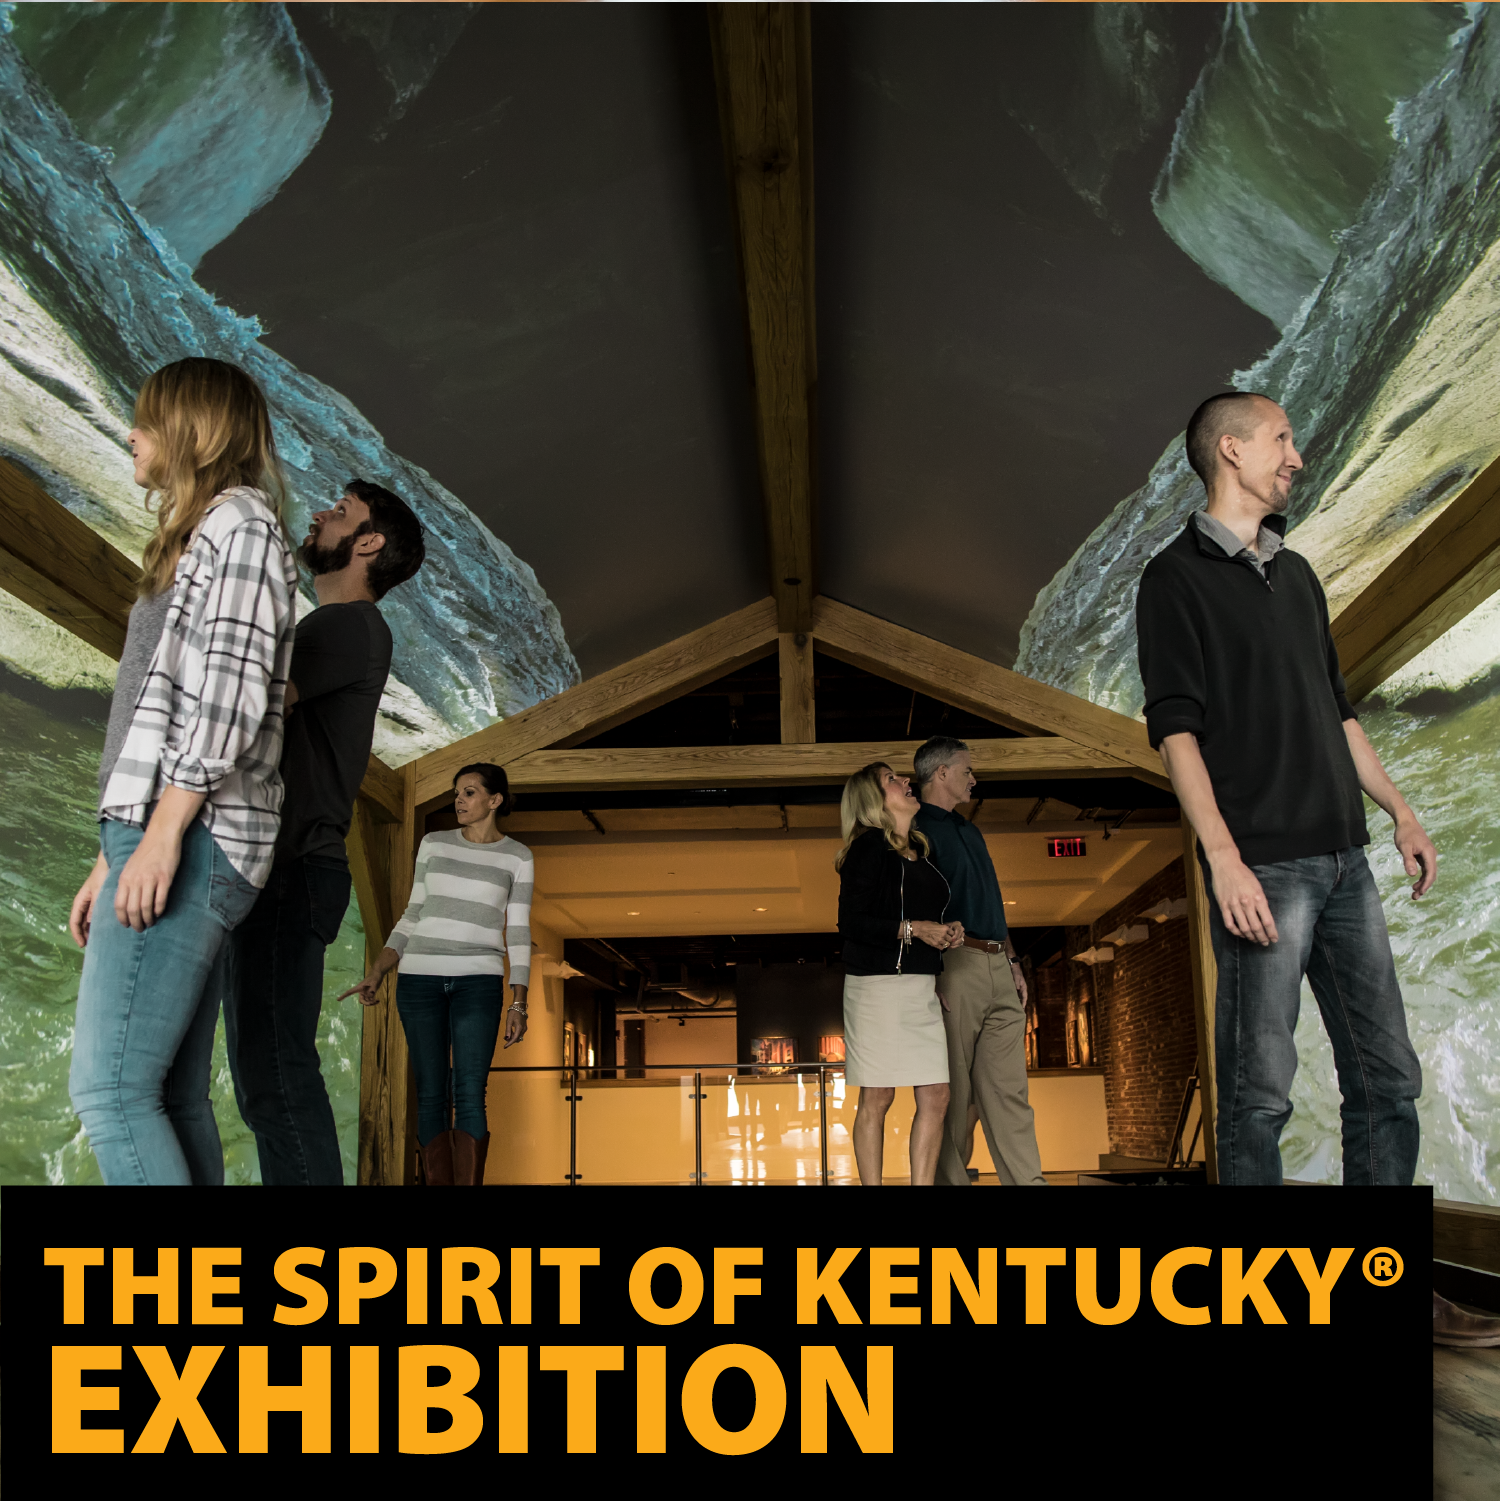 Visitors in a Simulated Covered Bridges with projections of the Kentucky Bourbon country